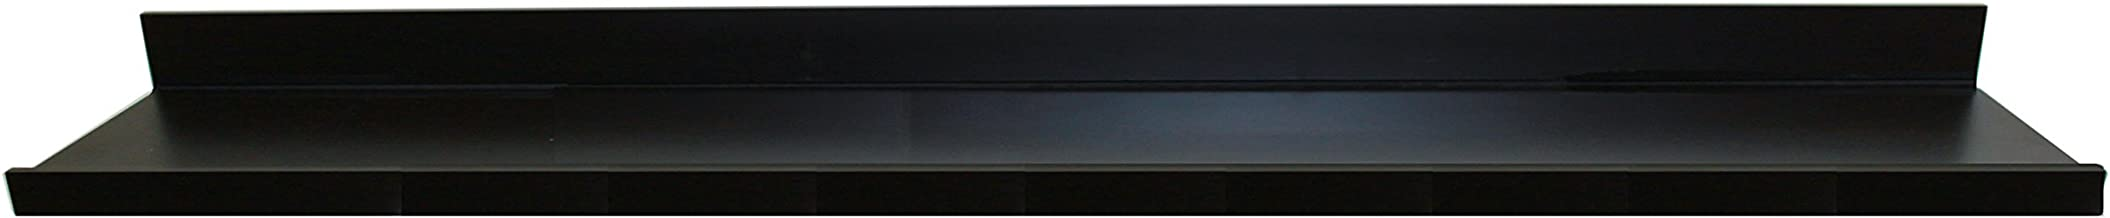 InPlace Shelving 9084684 72 in W x 4.5 in D x 3.5 in H Floating Shelf with Picture Ledge, Black